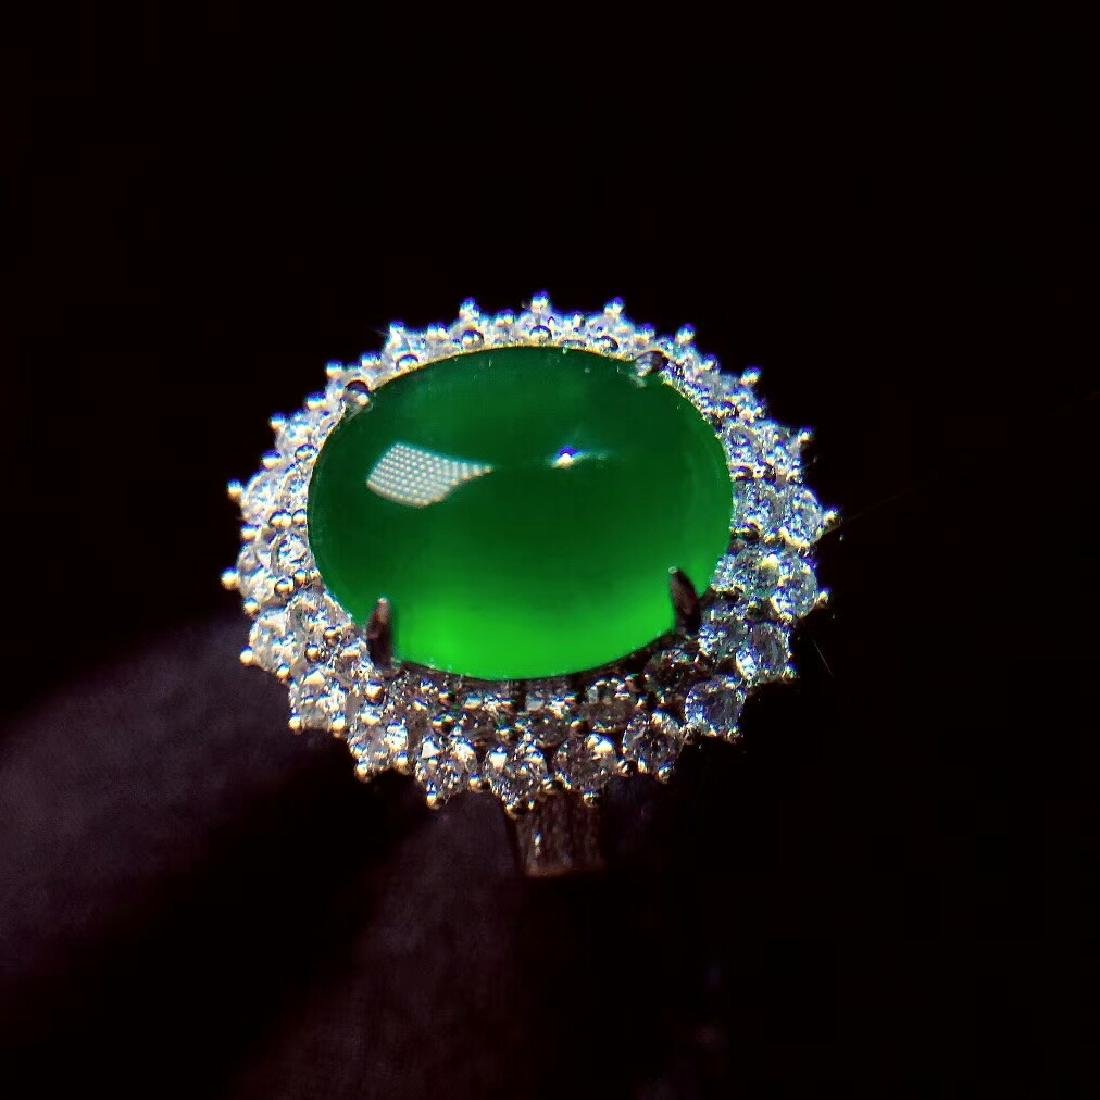 7.6ct Emerald Ring in 18kt White Gold - 4